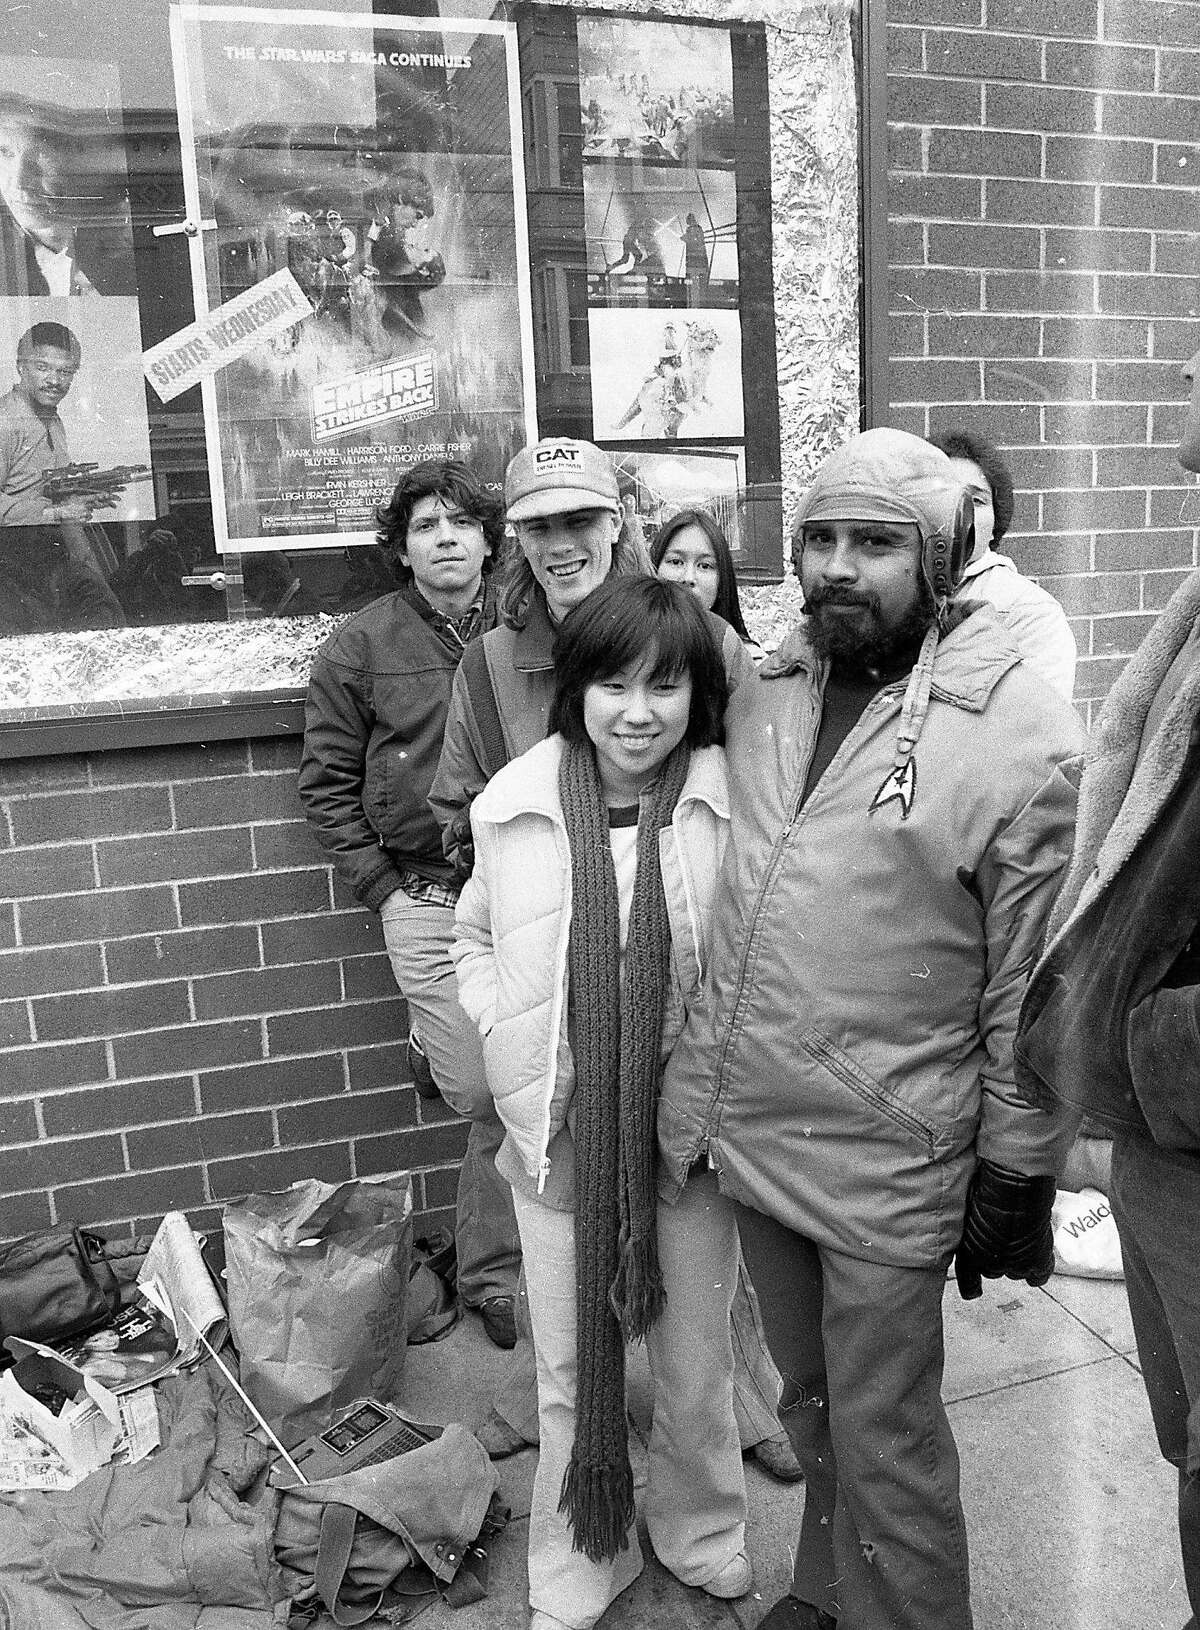 May 21, 1980: Fans wait in line for the first showing of